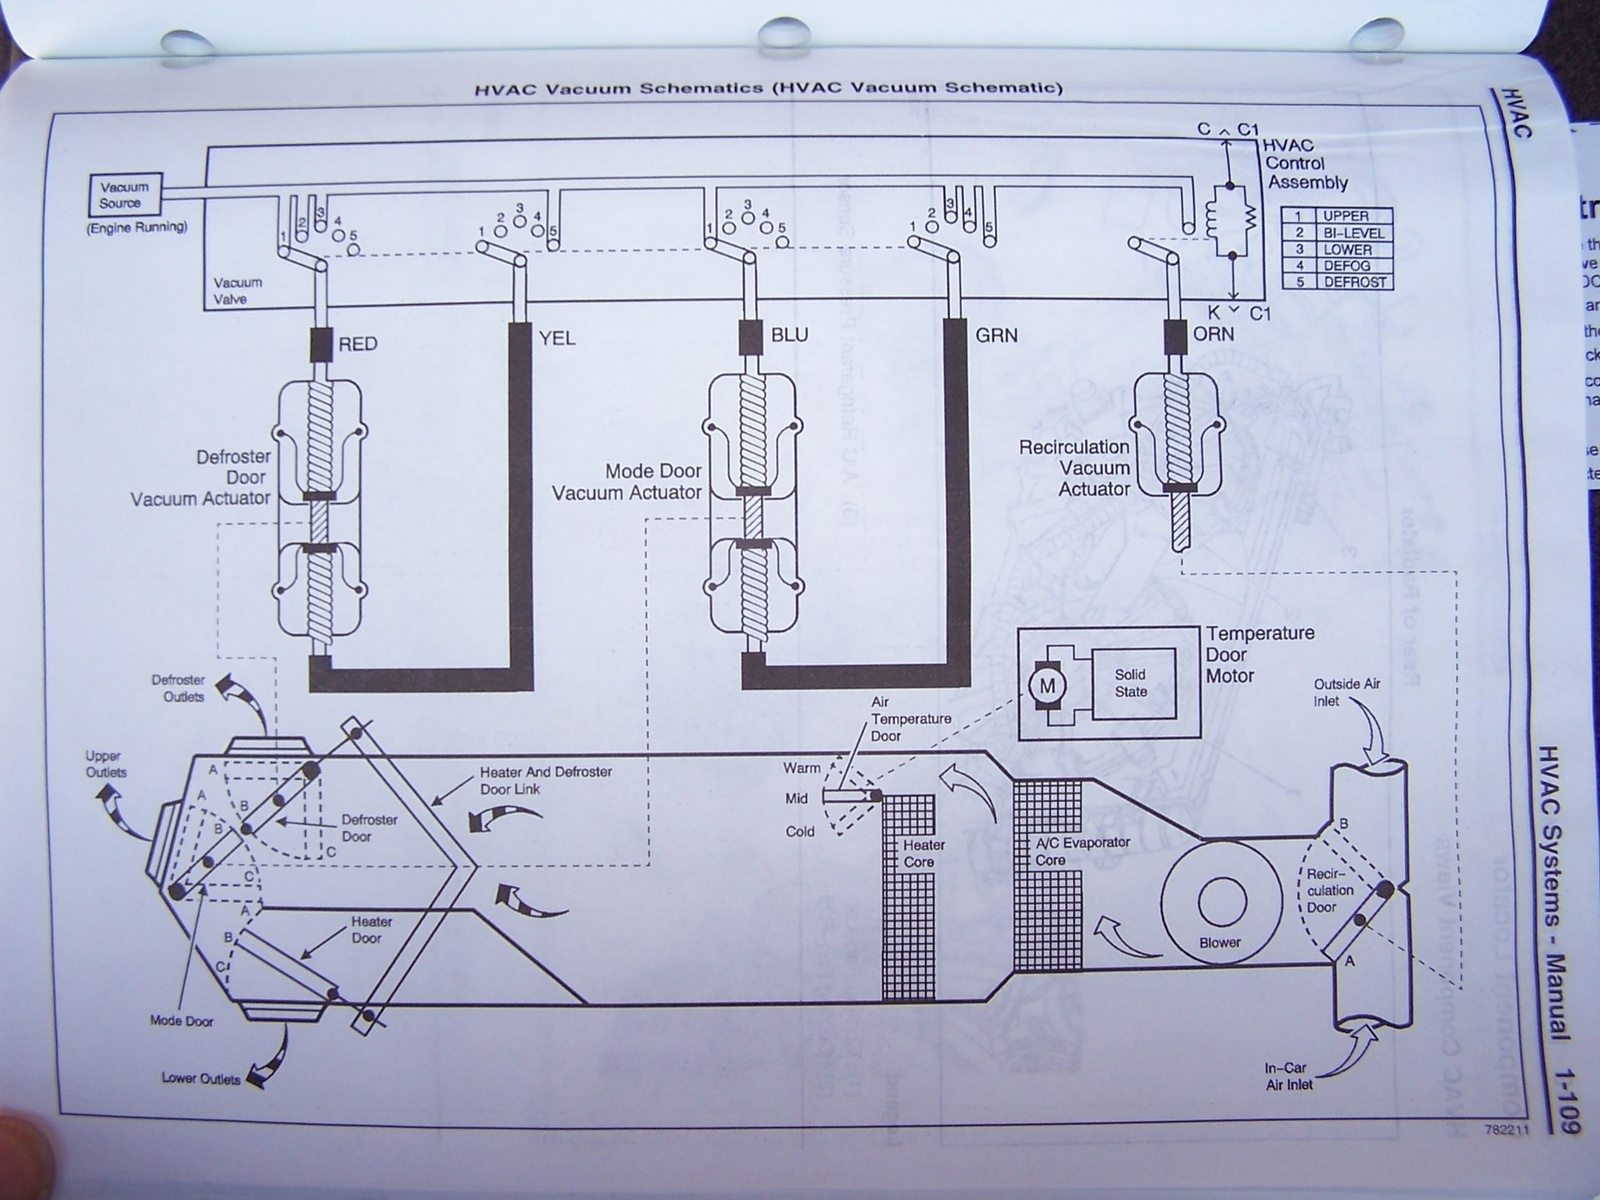 Pontiac Grand Prix Air Conditioning Wiring Schematic 2001 Diagram Cherokee Heater Core On For Am